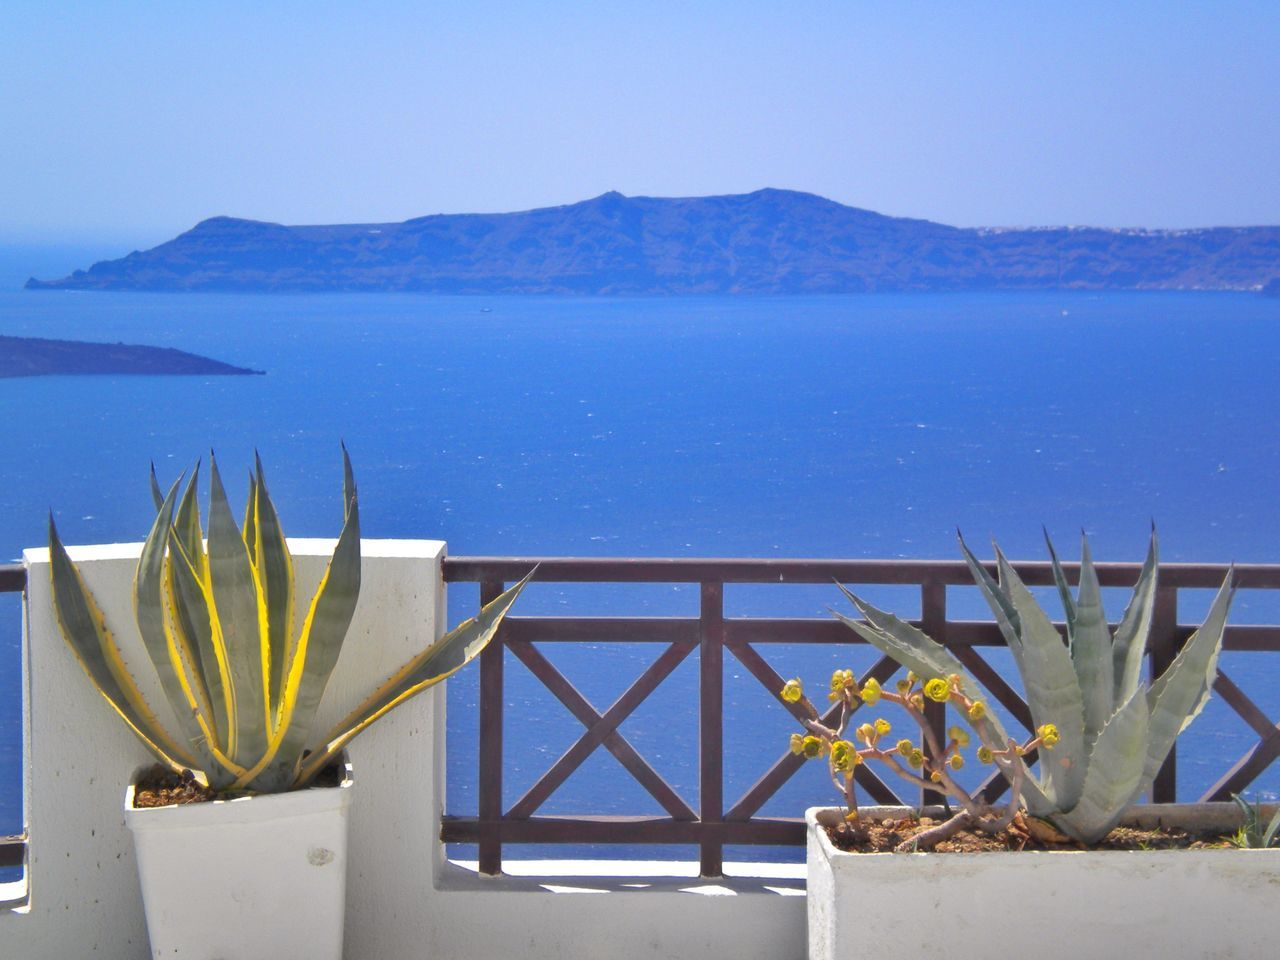 Blue Breathe Explore Greece Holiday Idyllic Mediterranean  Mindful Mindfulness Ocean View Picturesque Recreation  Recreational Pursuit Relaxing Moments Santorini Santorini Greece Santorini Island Santorini, Greece Sea Sea View Seascape Seascape Photography Vacation